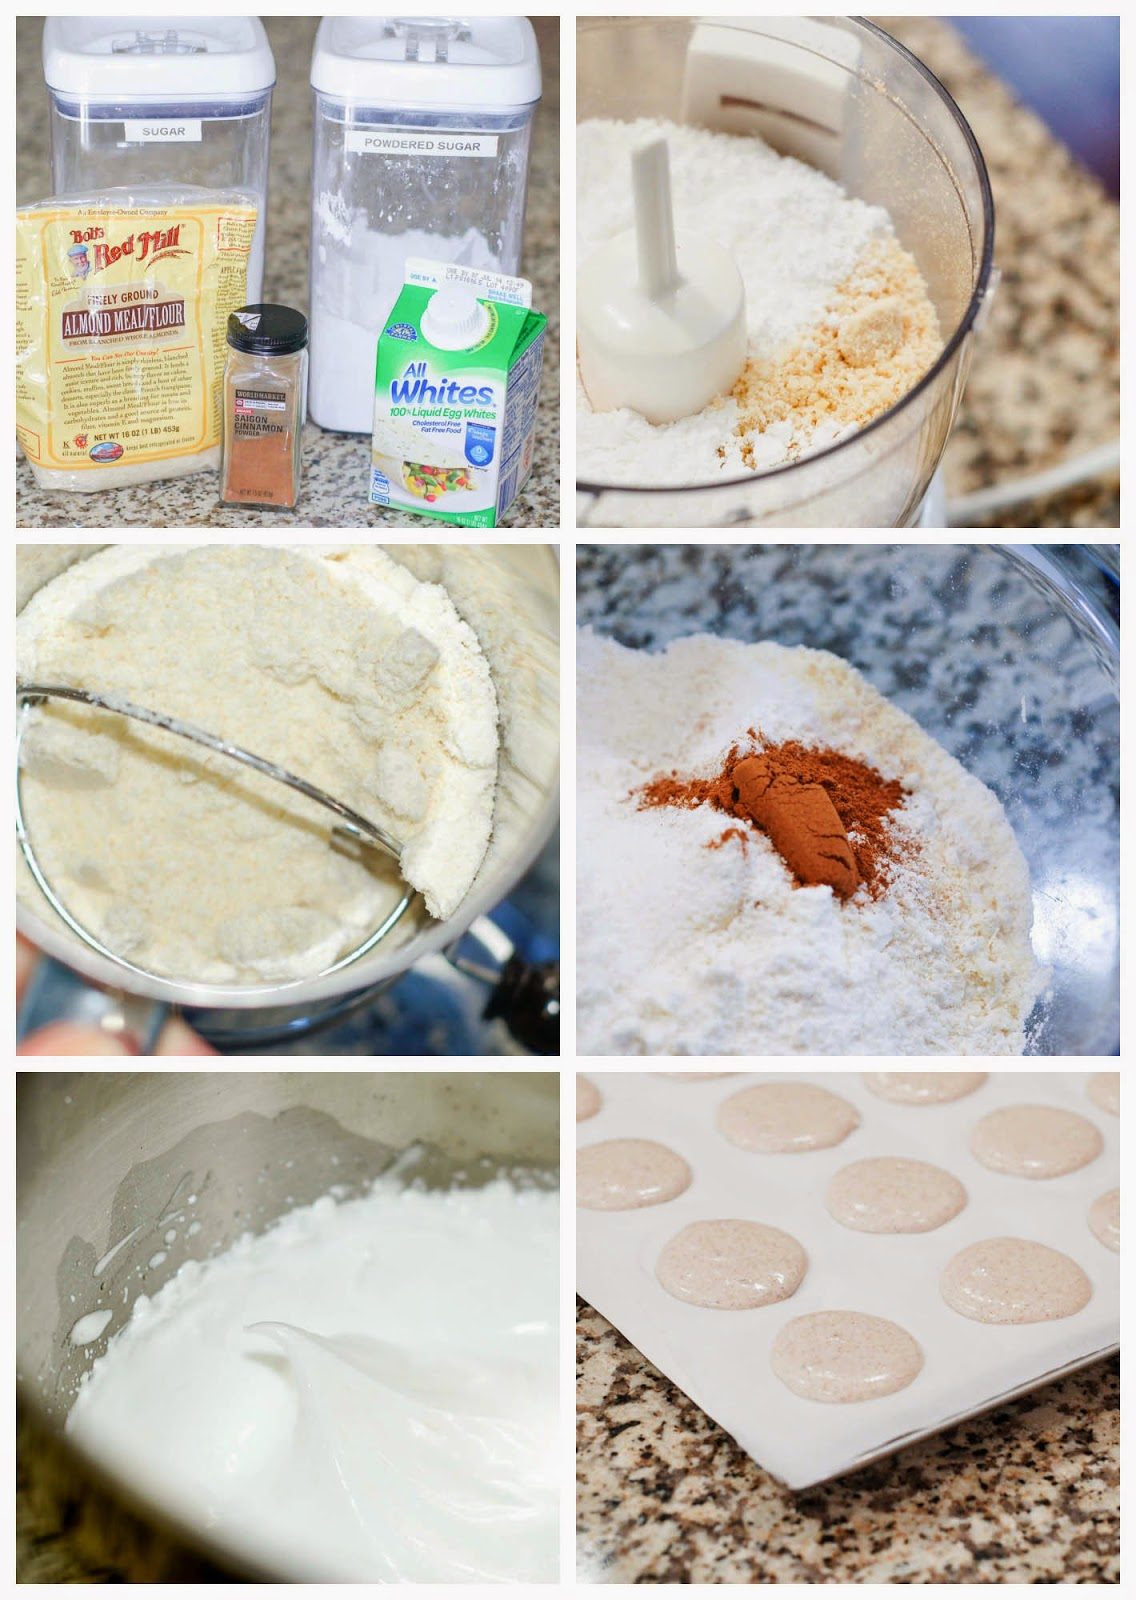 Making Churro Macarons by The Sweet Chick